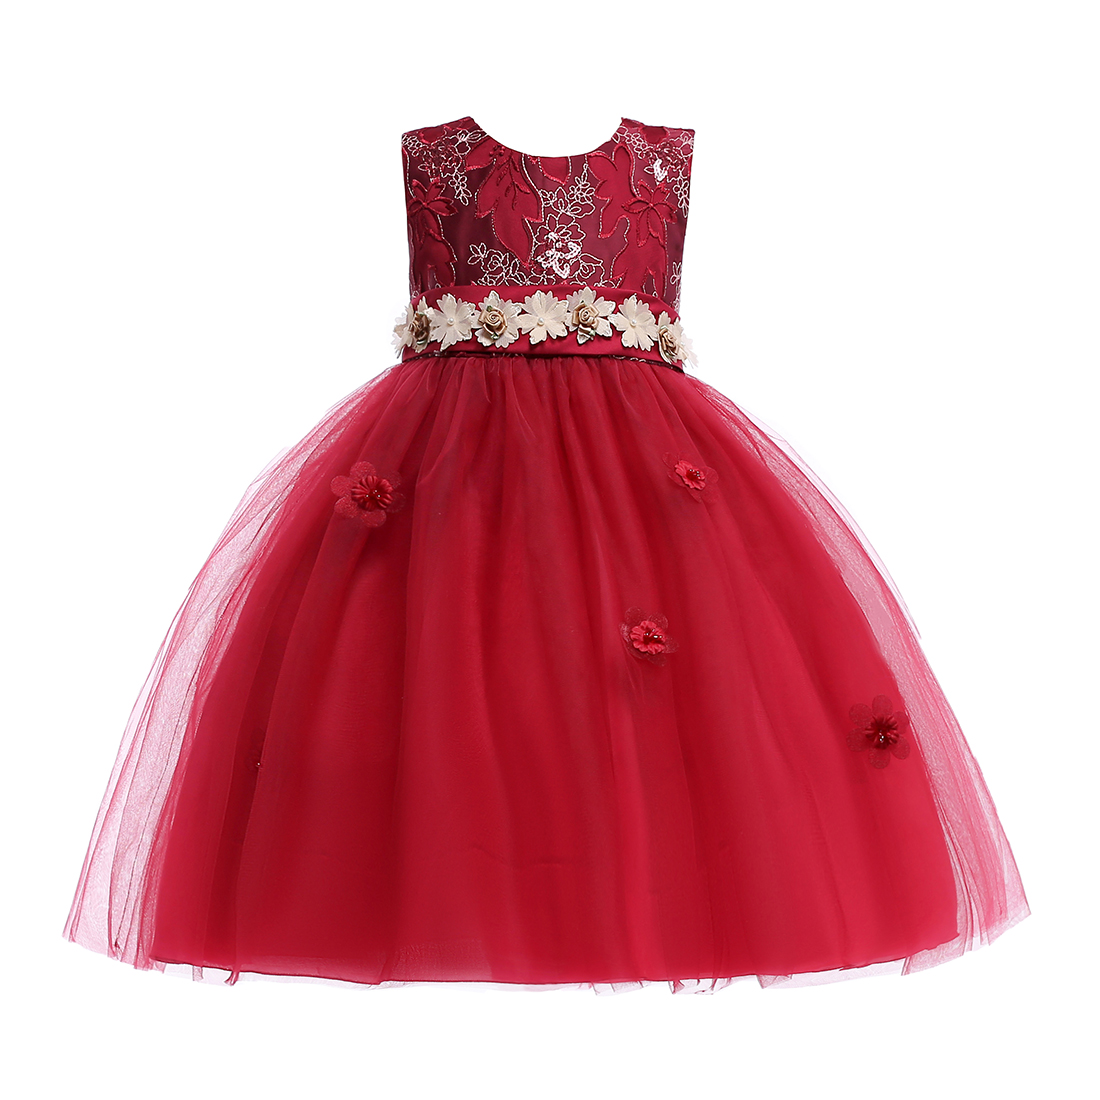 Dress With Flower Pattern Beautiful Flower Girl Dresses With Belt